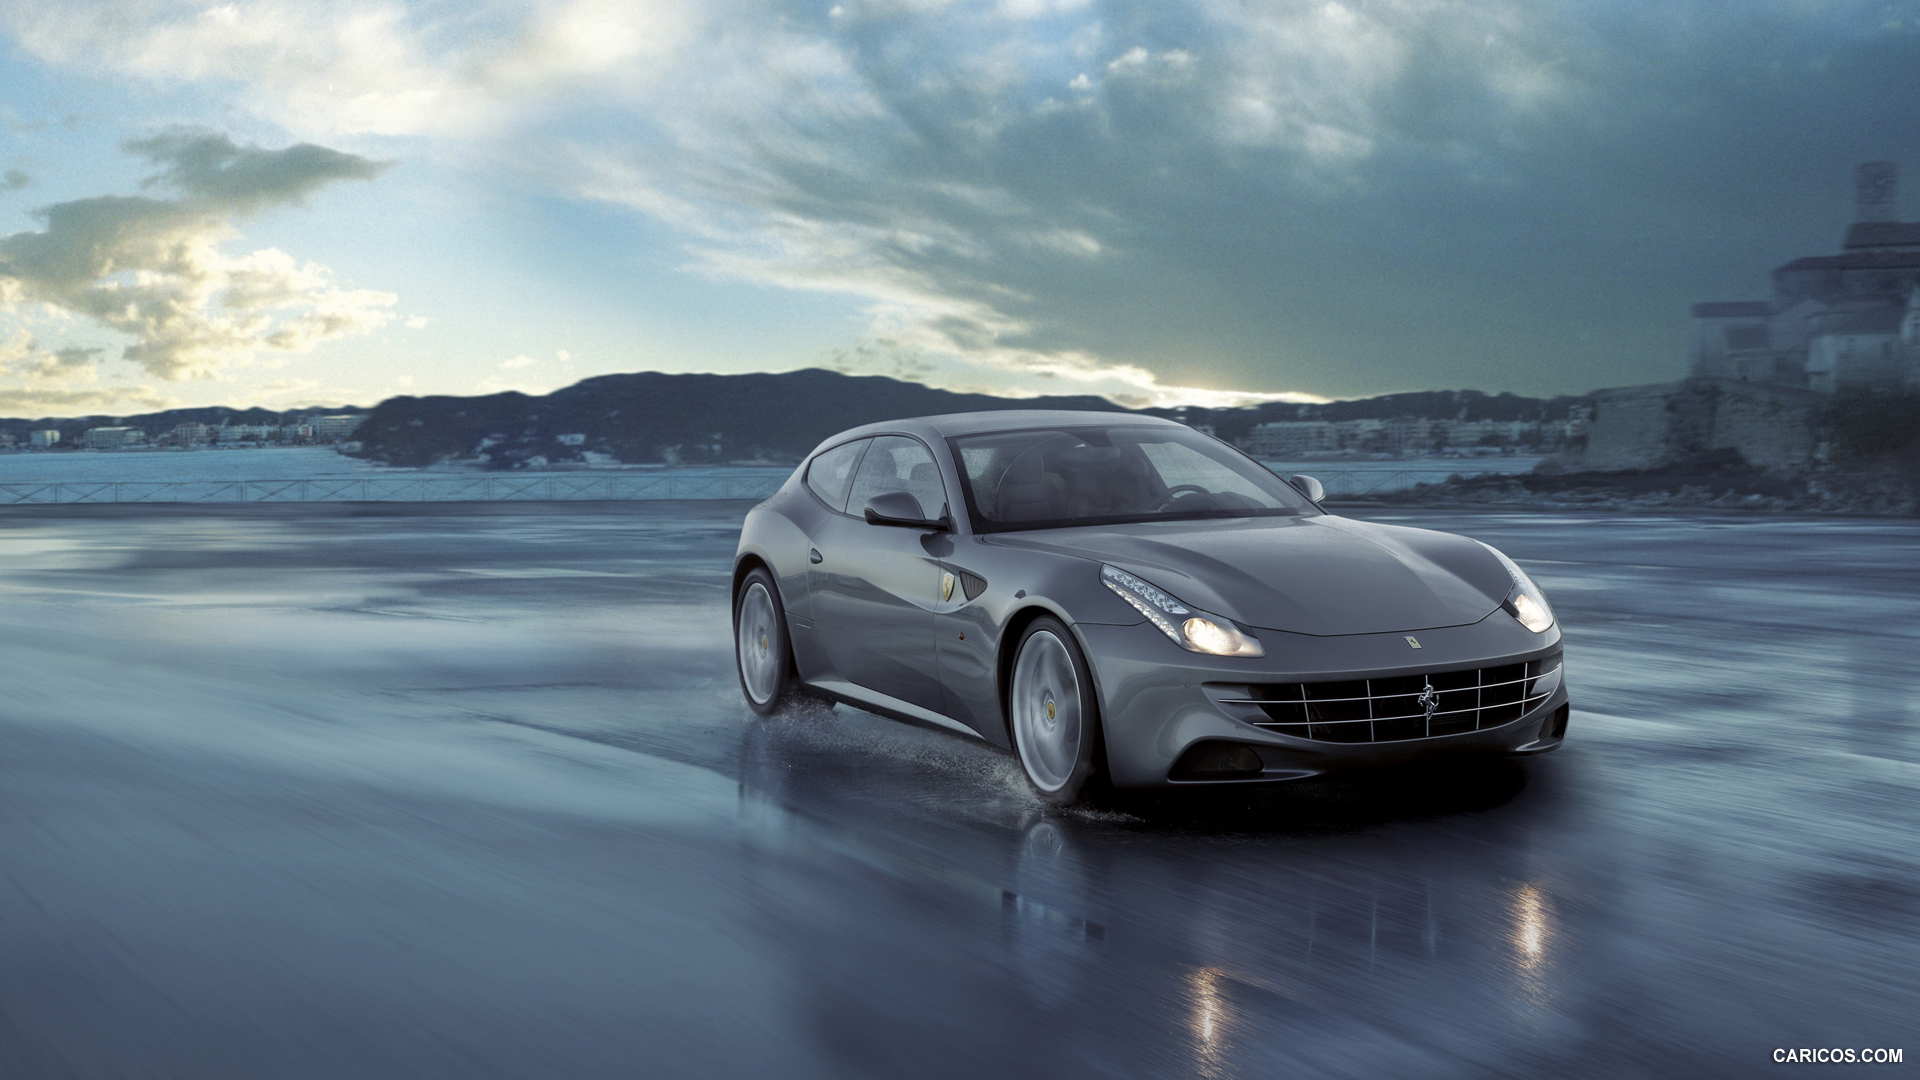 1920x1080 - Ferrari FF Wallpapers 13